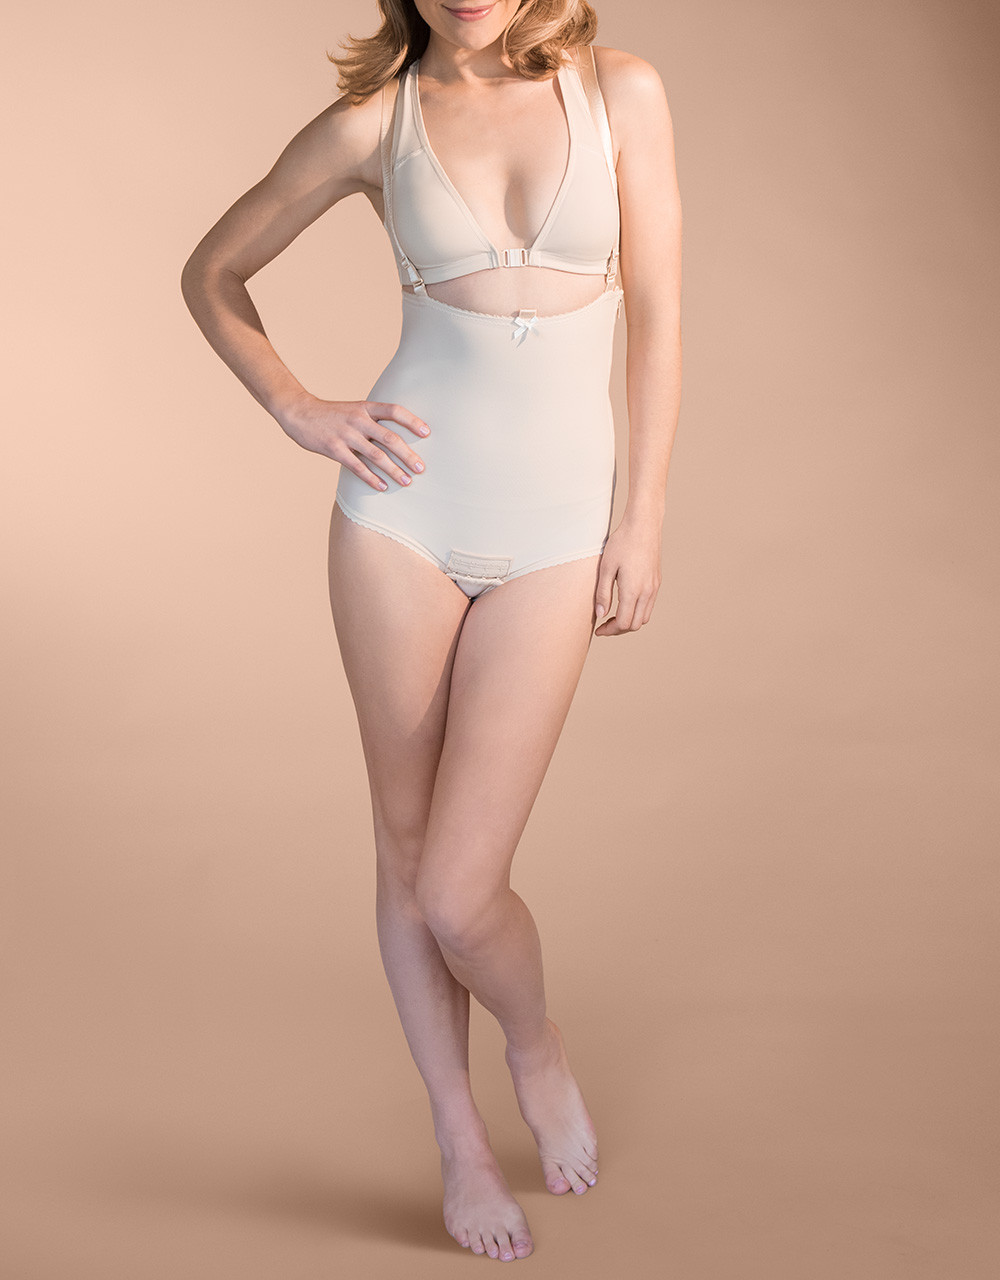 183dbd224e124 Panty-Length Compression Girdle with Suspenders